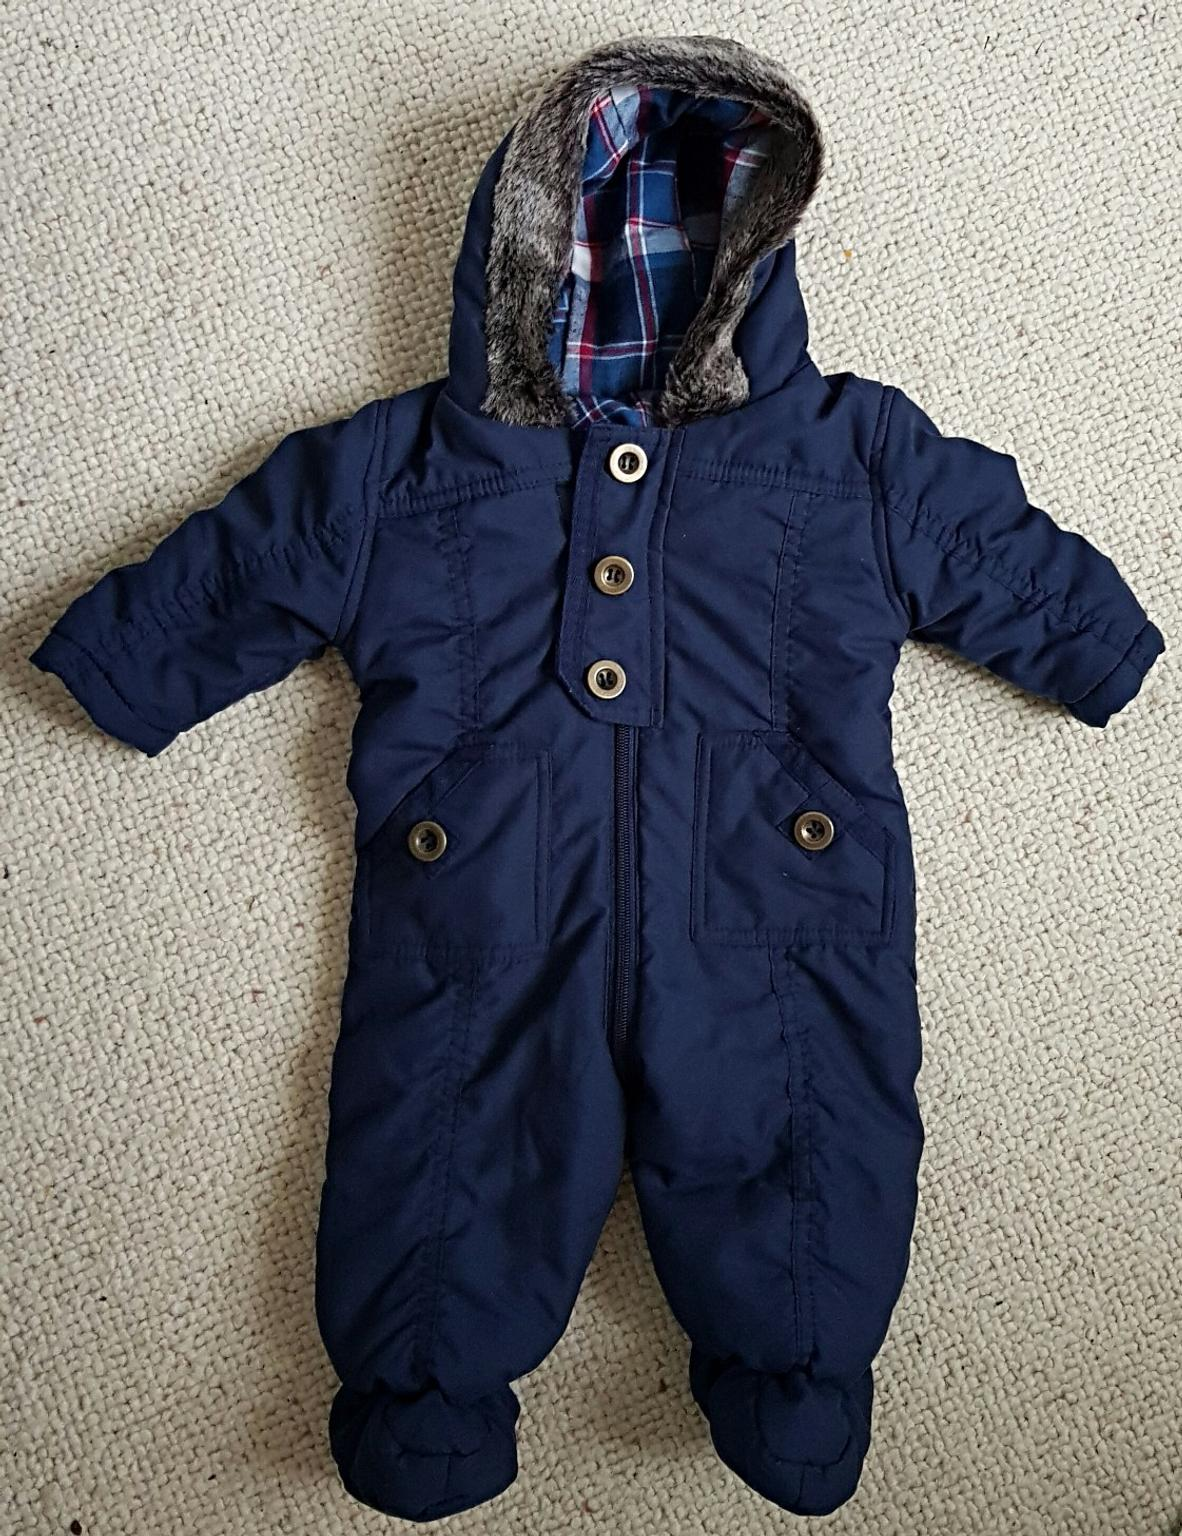 dd917cb10a4f Baby Boy Blue Snowsuit Pram suit 3 - 6 month in S40 Chesterfield for ...